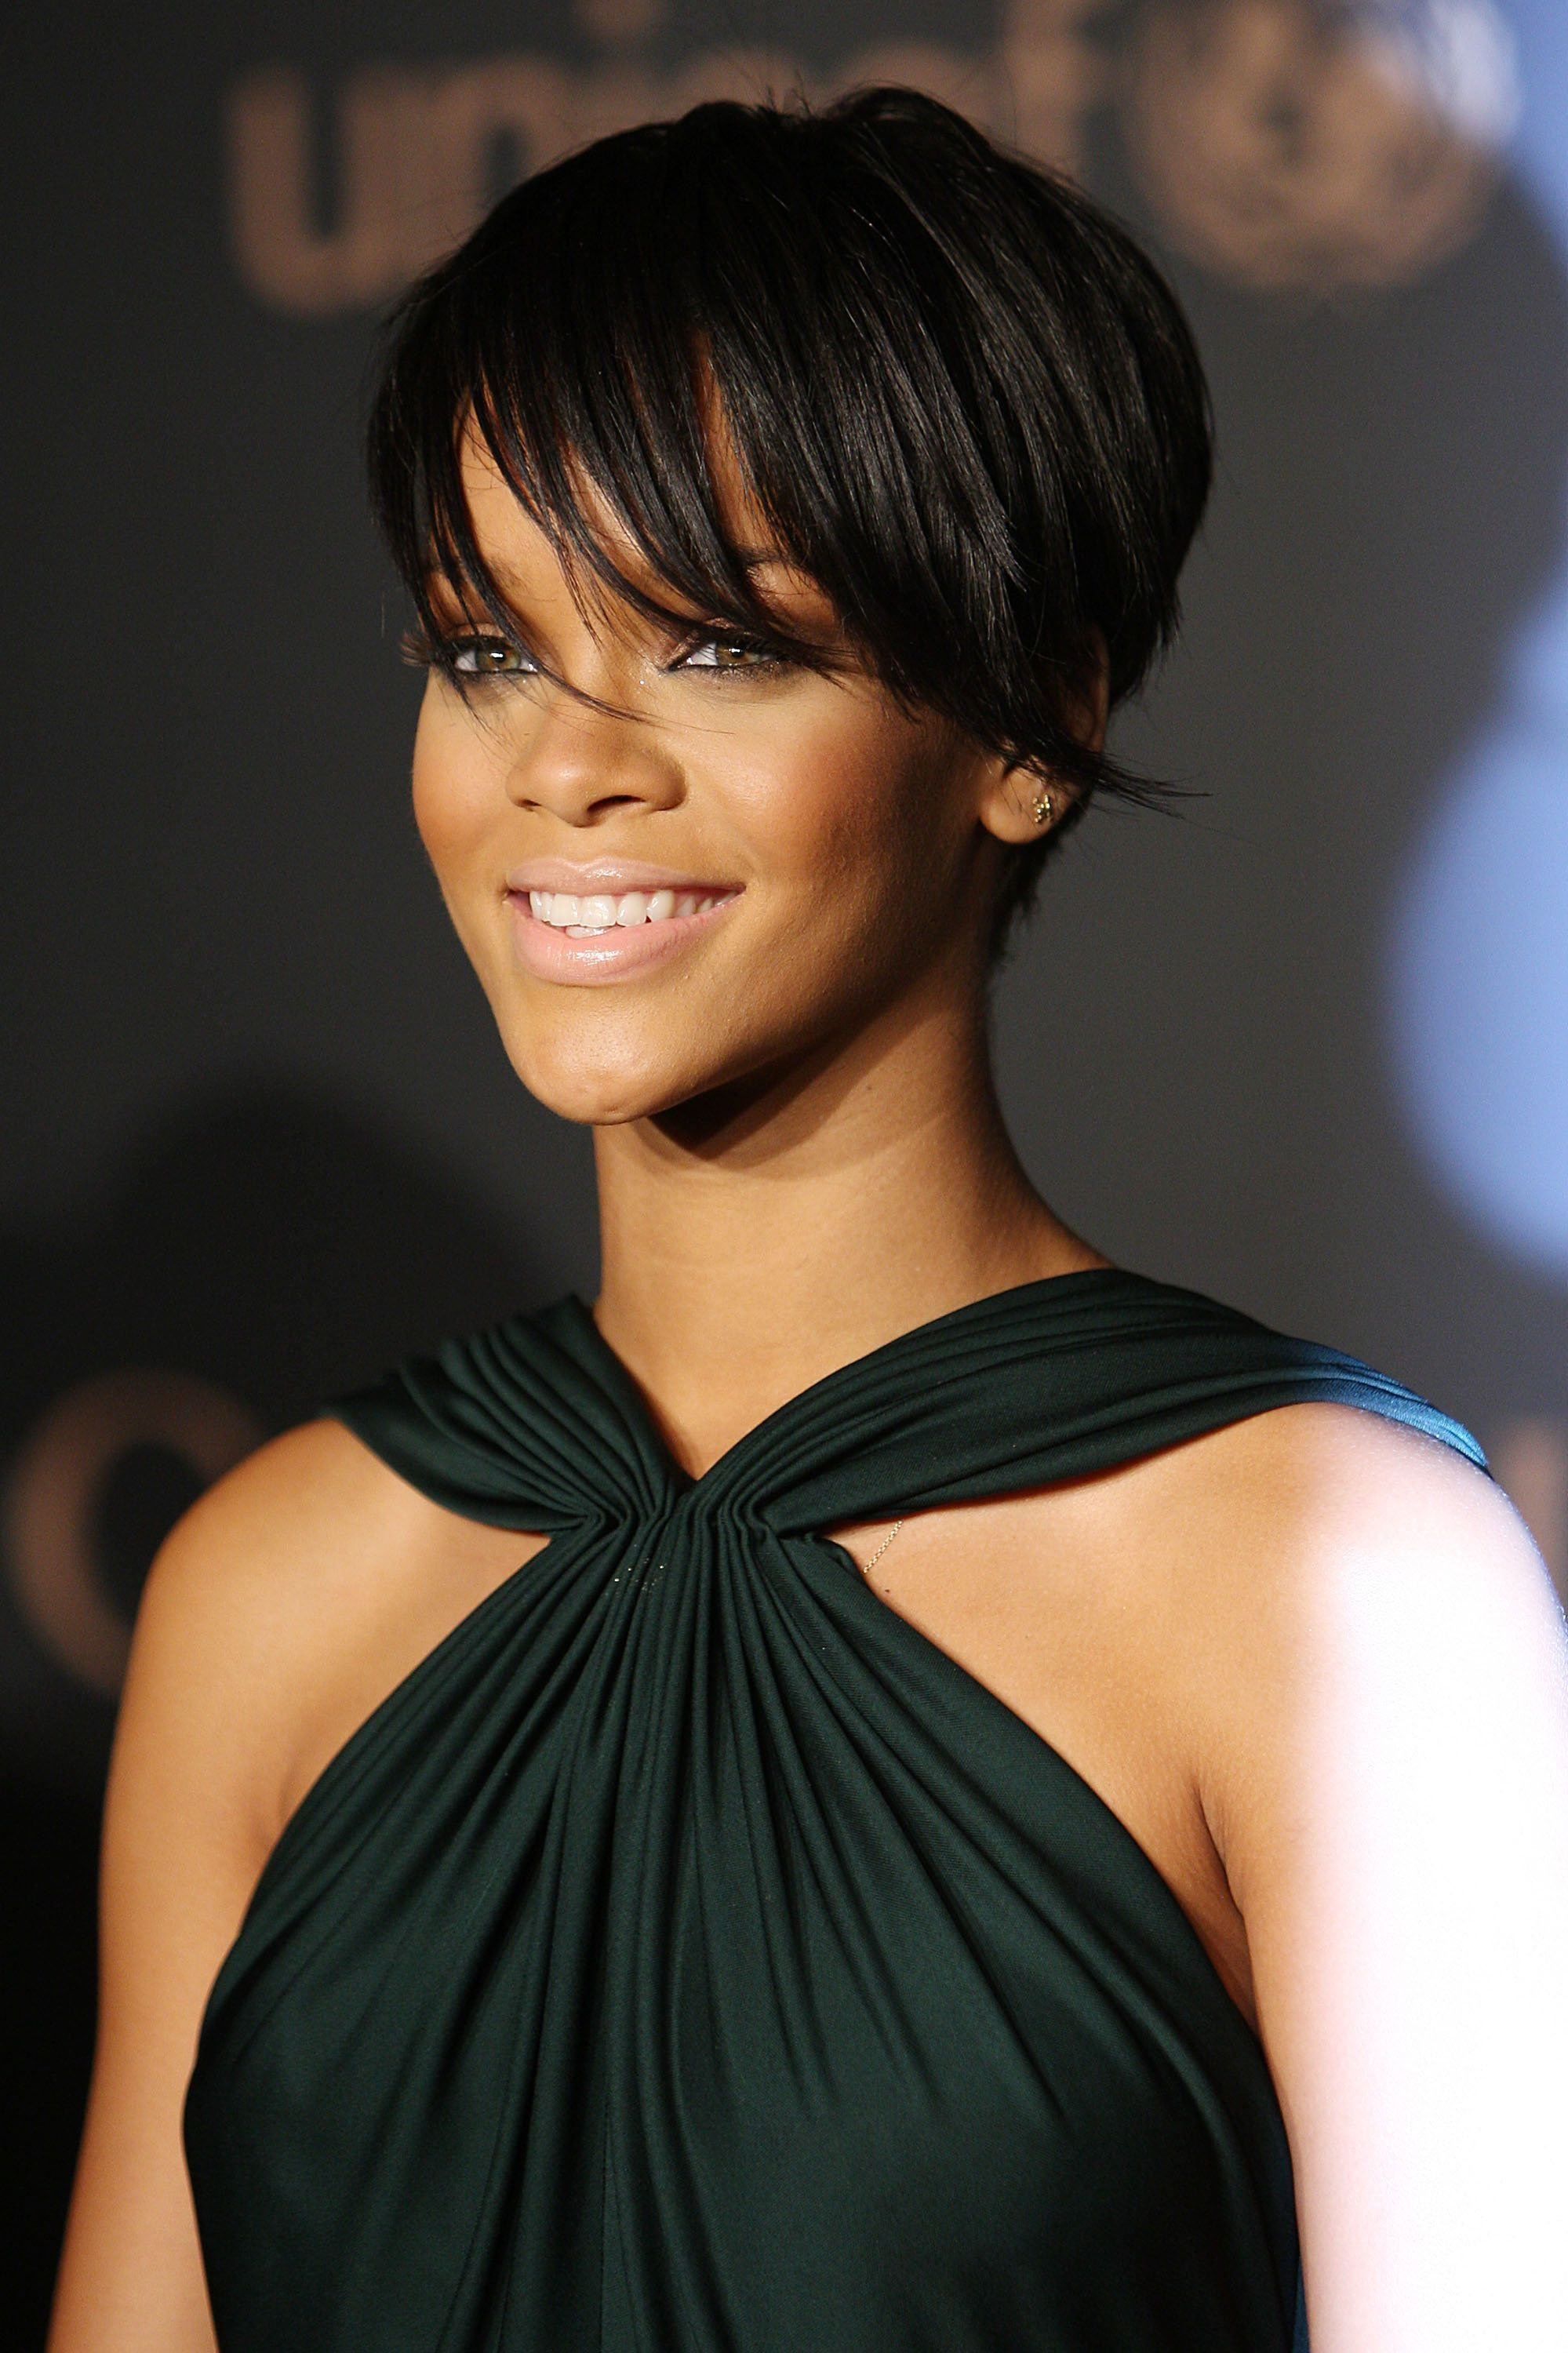 The Best 40 Rihanna Hairstyles To Inspire Your Next Makeover Huffpost Pictures